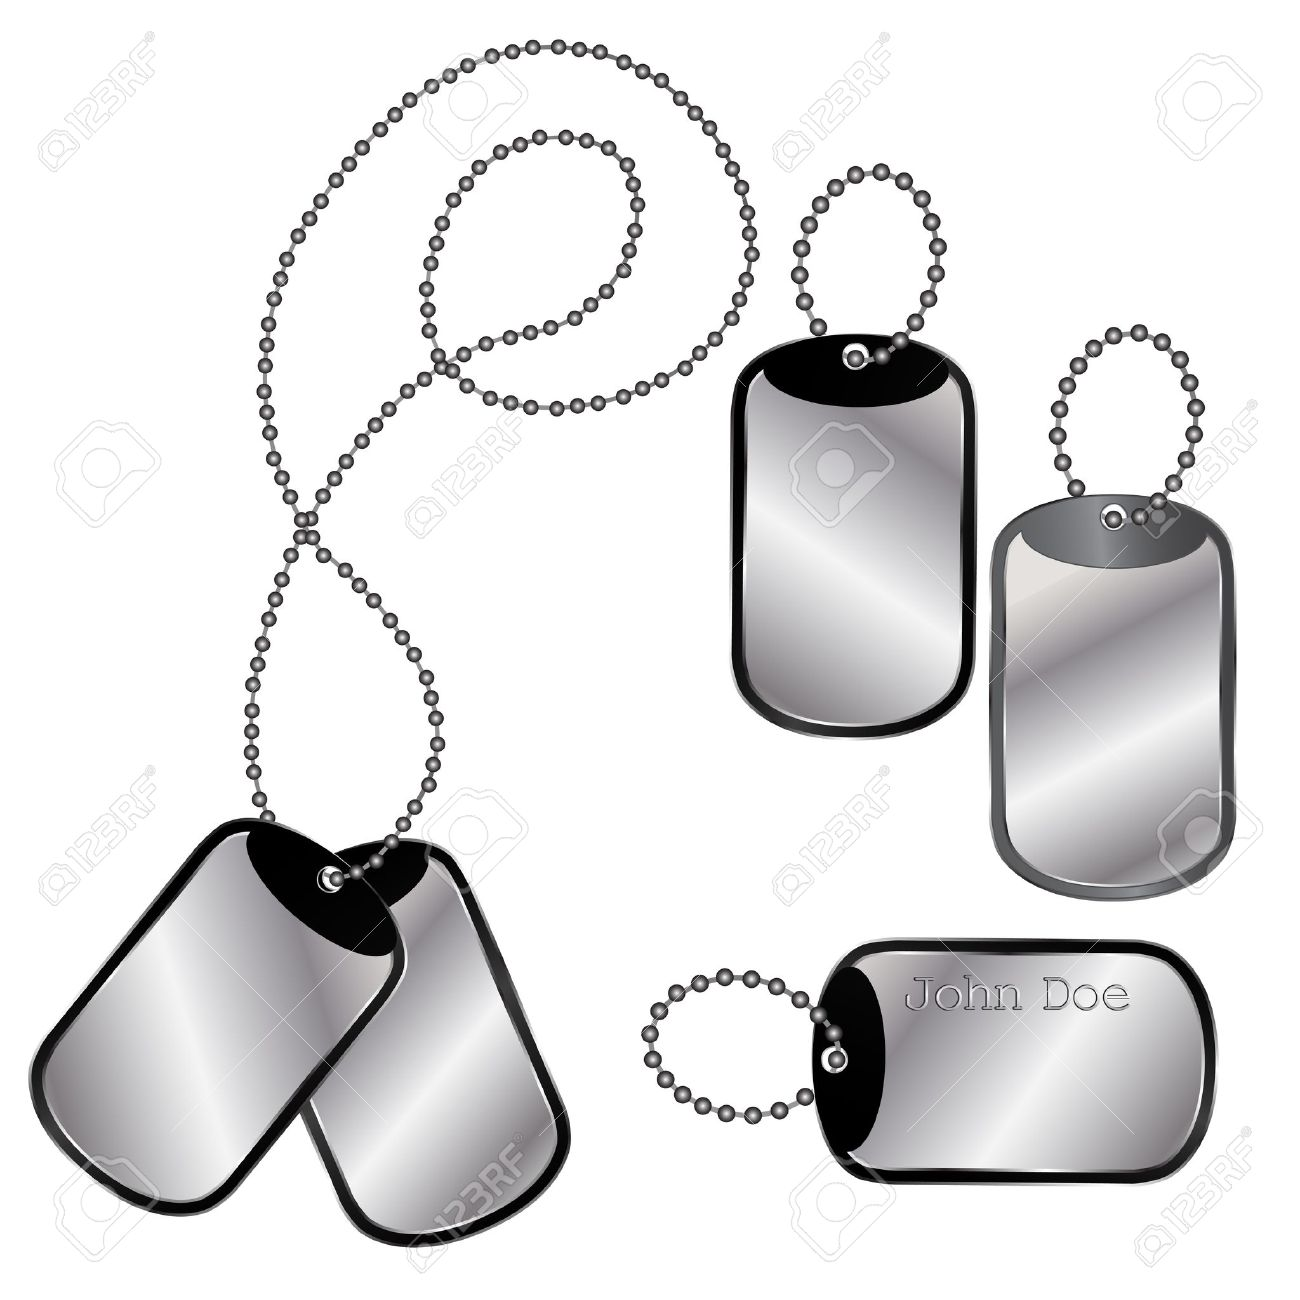 1300x1300 Vector Of Different Dog Tags On A Chain On White Royalty Free